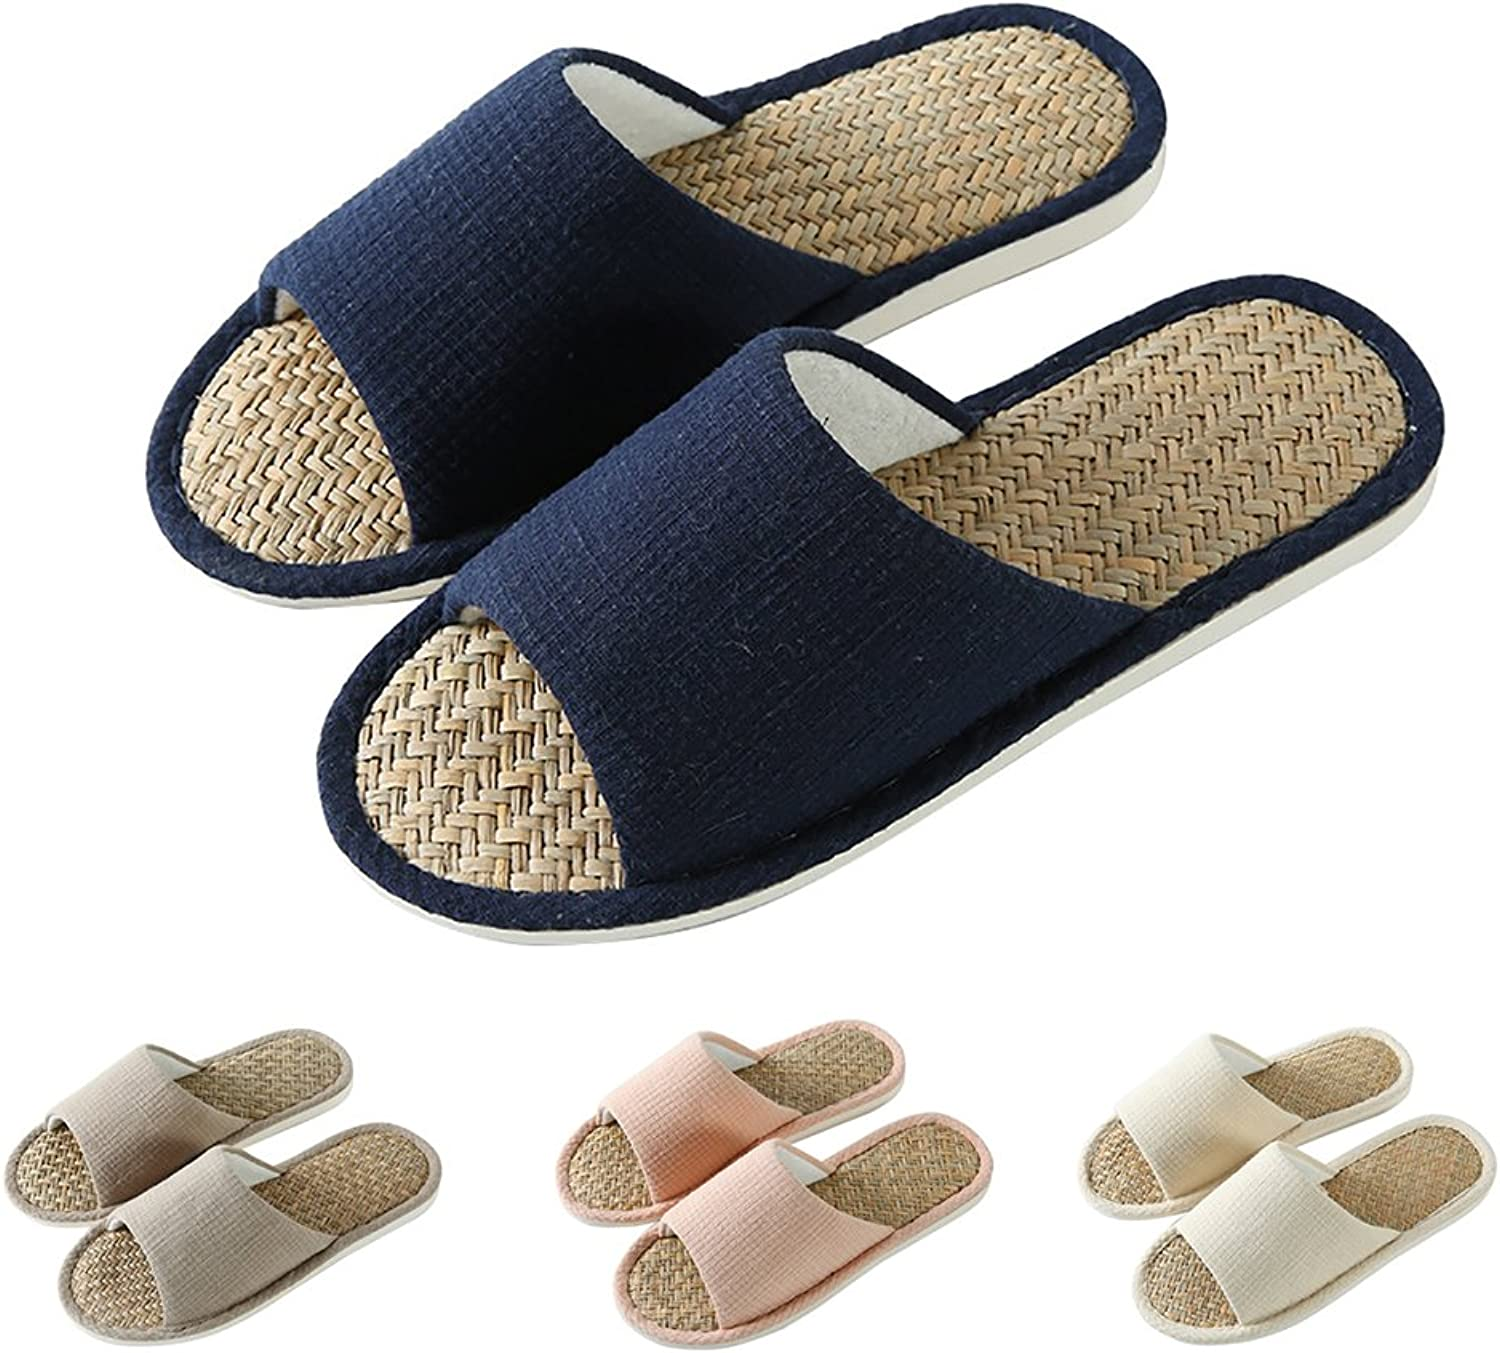 MAGILONA Women Mens Unisex Straw Weaving Cotton Linen Open-Toe Home Slippers shoes Casual Flax Soft Non-Slip Sole shoes